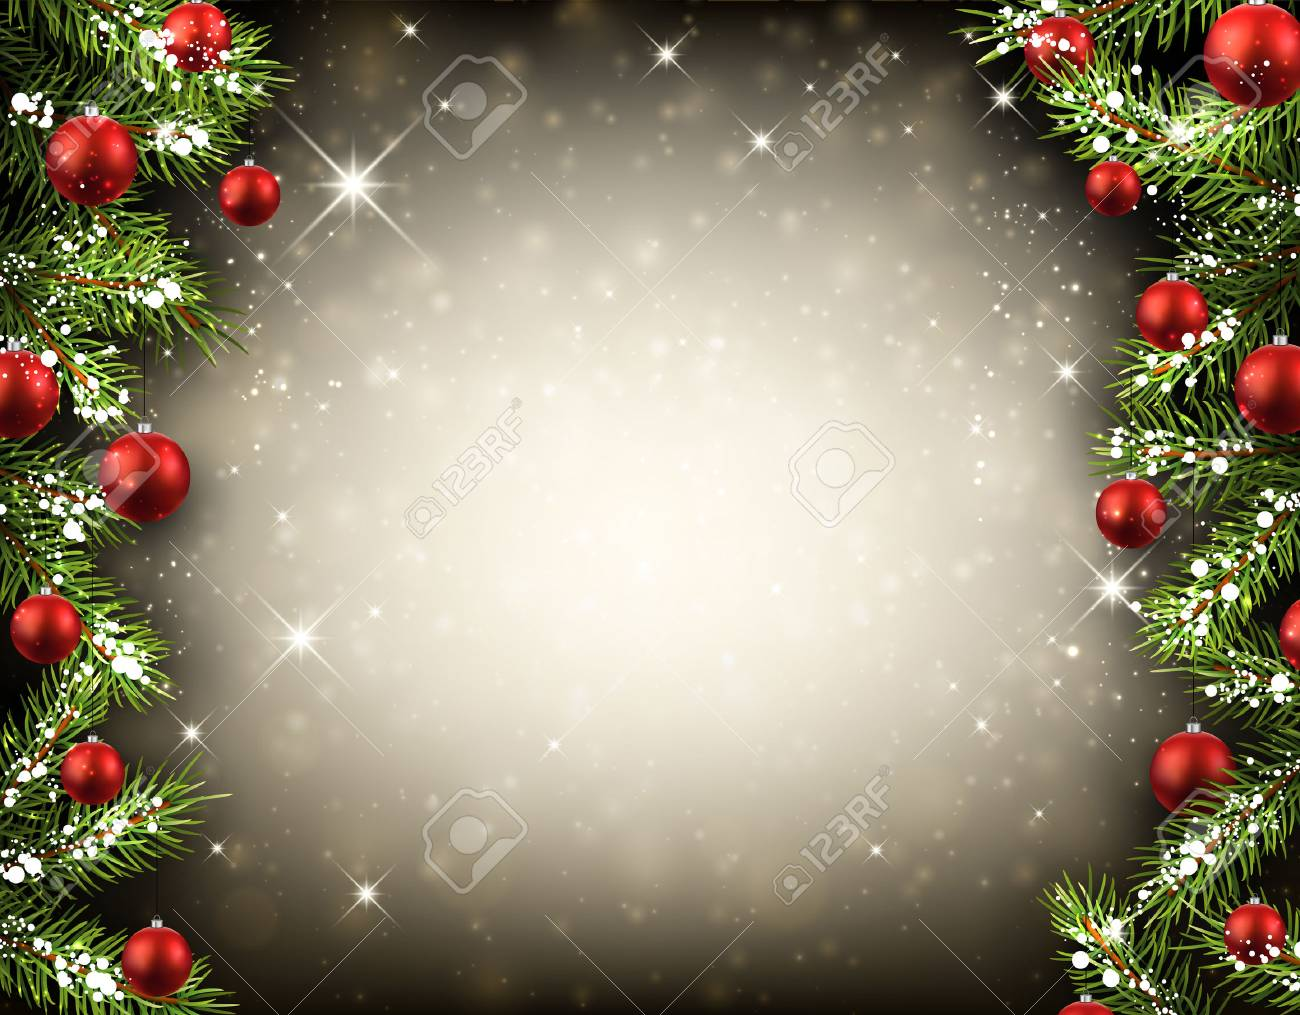 Christmas background with fir branches and balls. Vector illustration. - 49254076